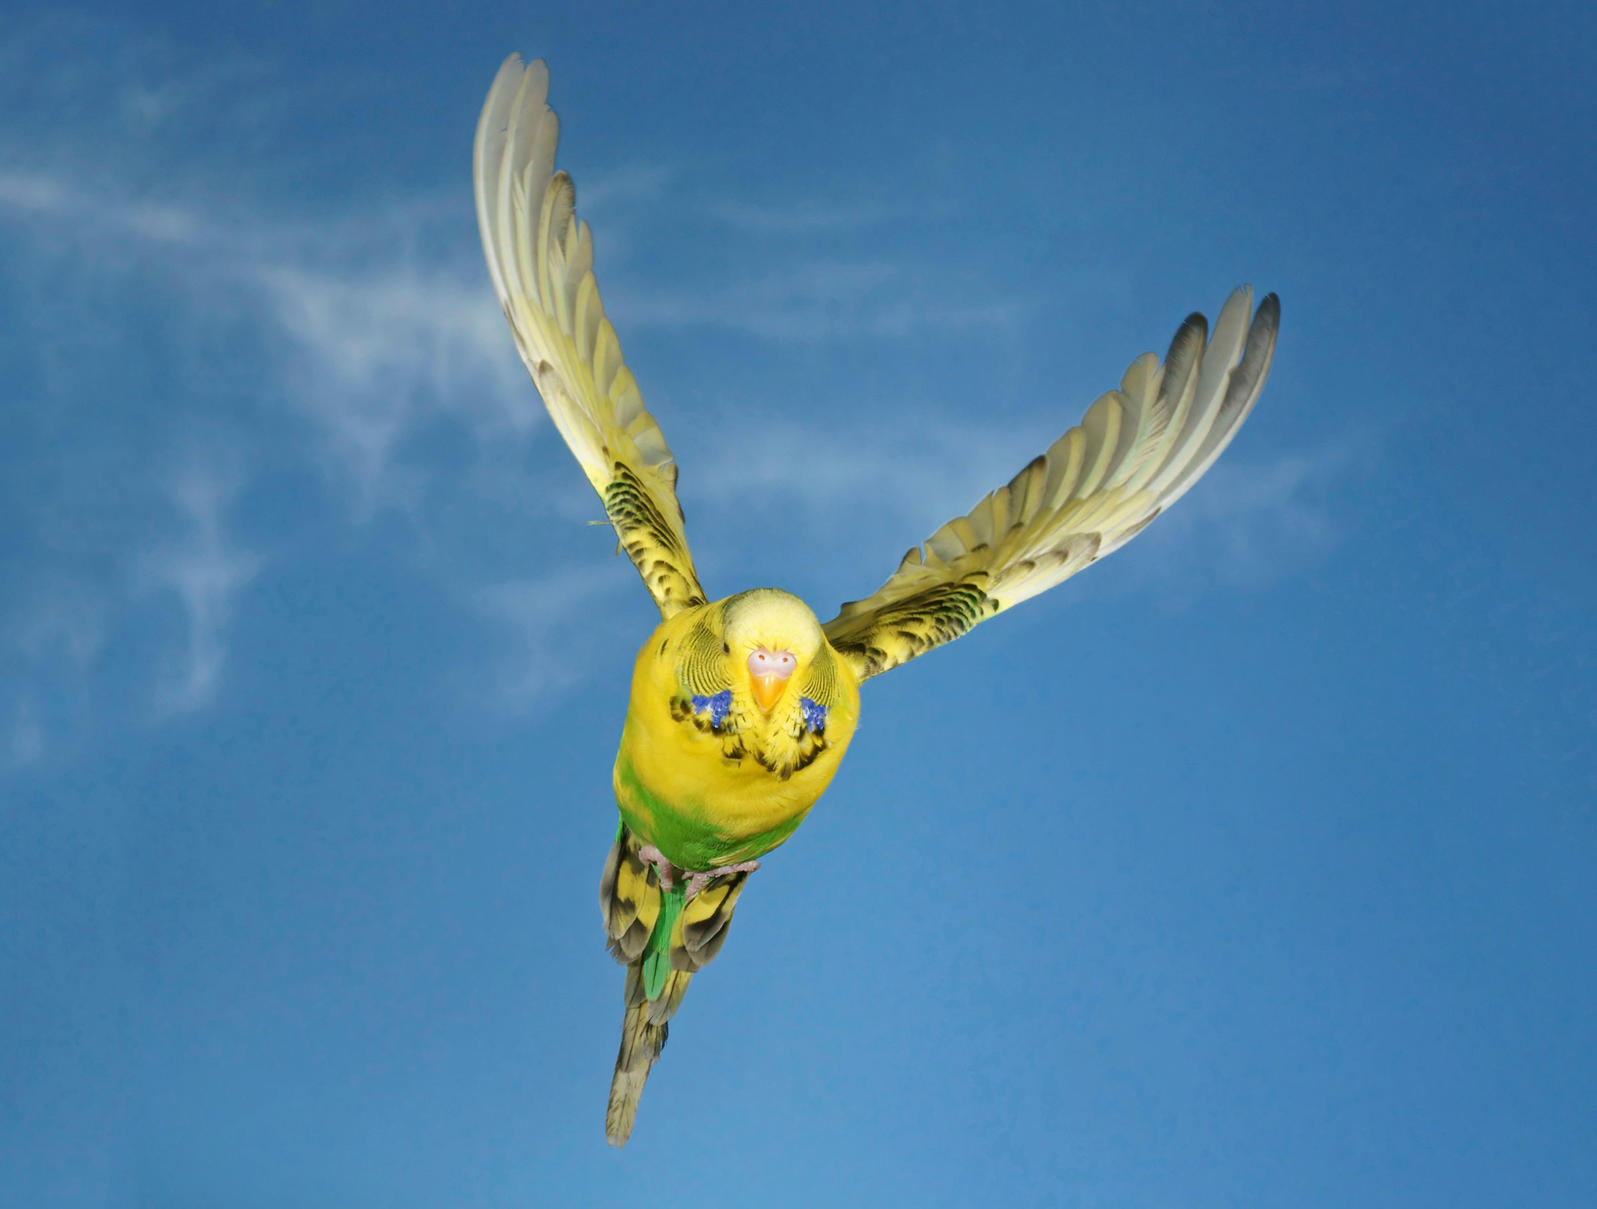 To avoid running into each other, Budgerigars are wired to turn right. imageBROKER/Alamy